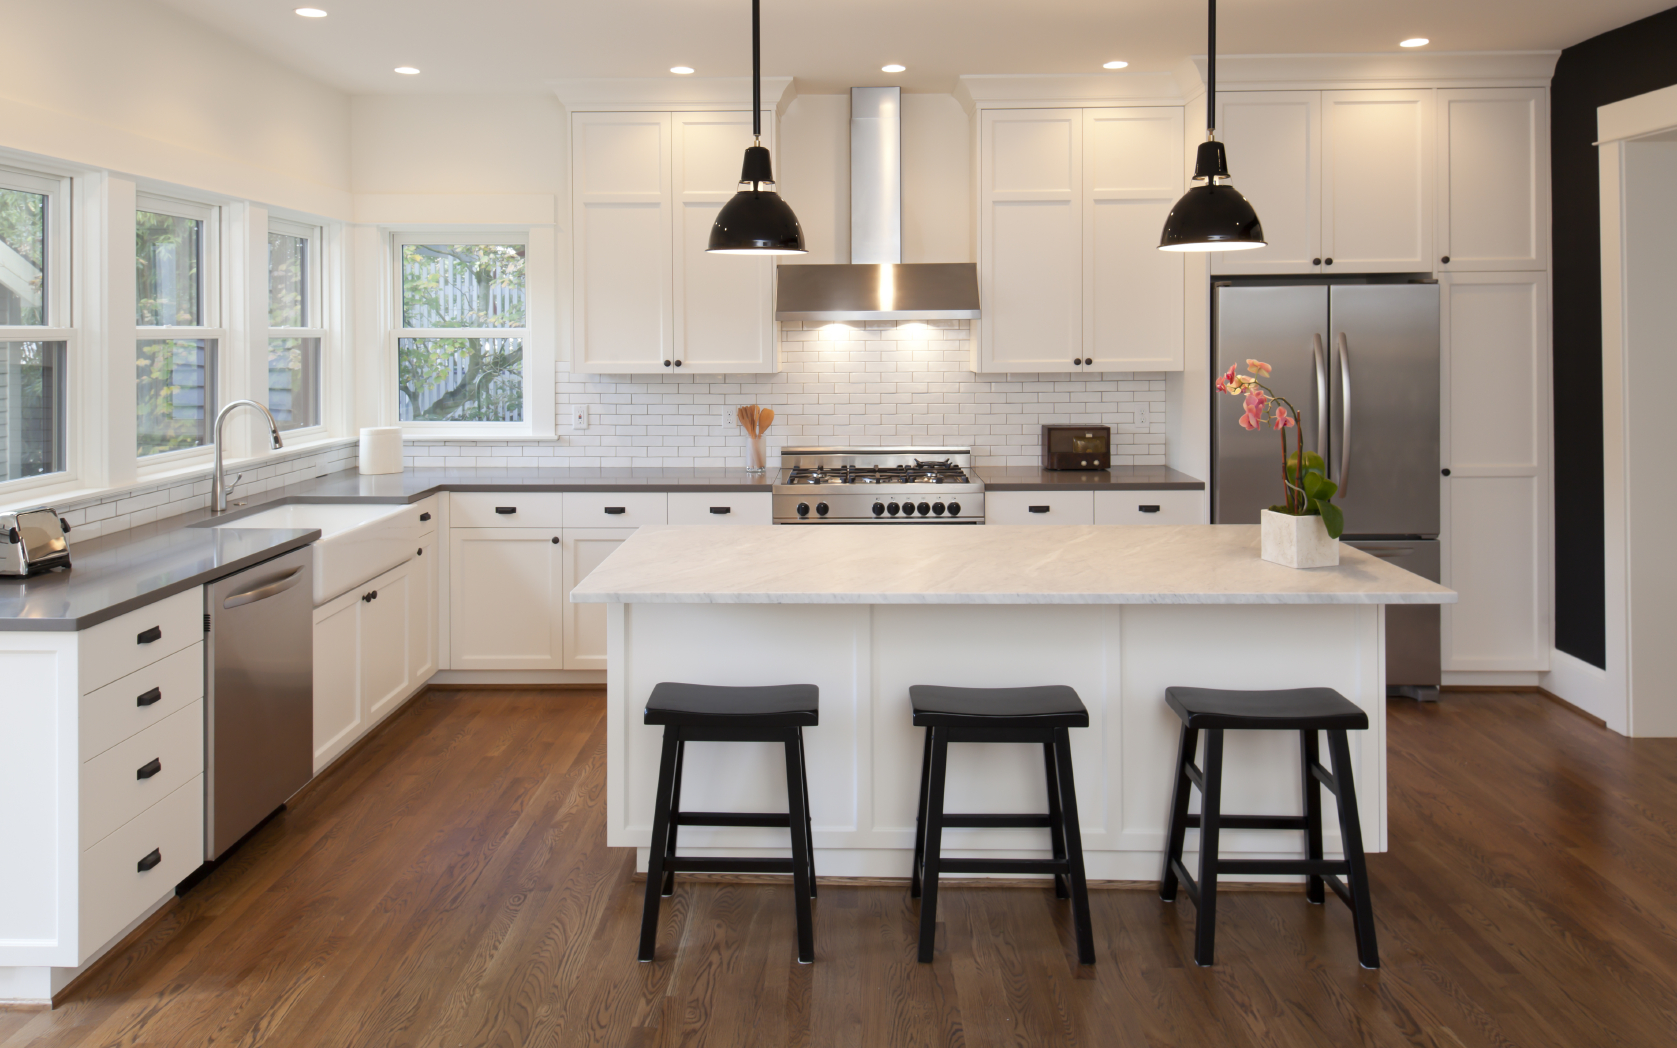 Custom Renovation Solutions Clark County Kitchen Remodel Contractor